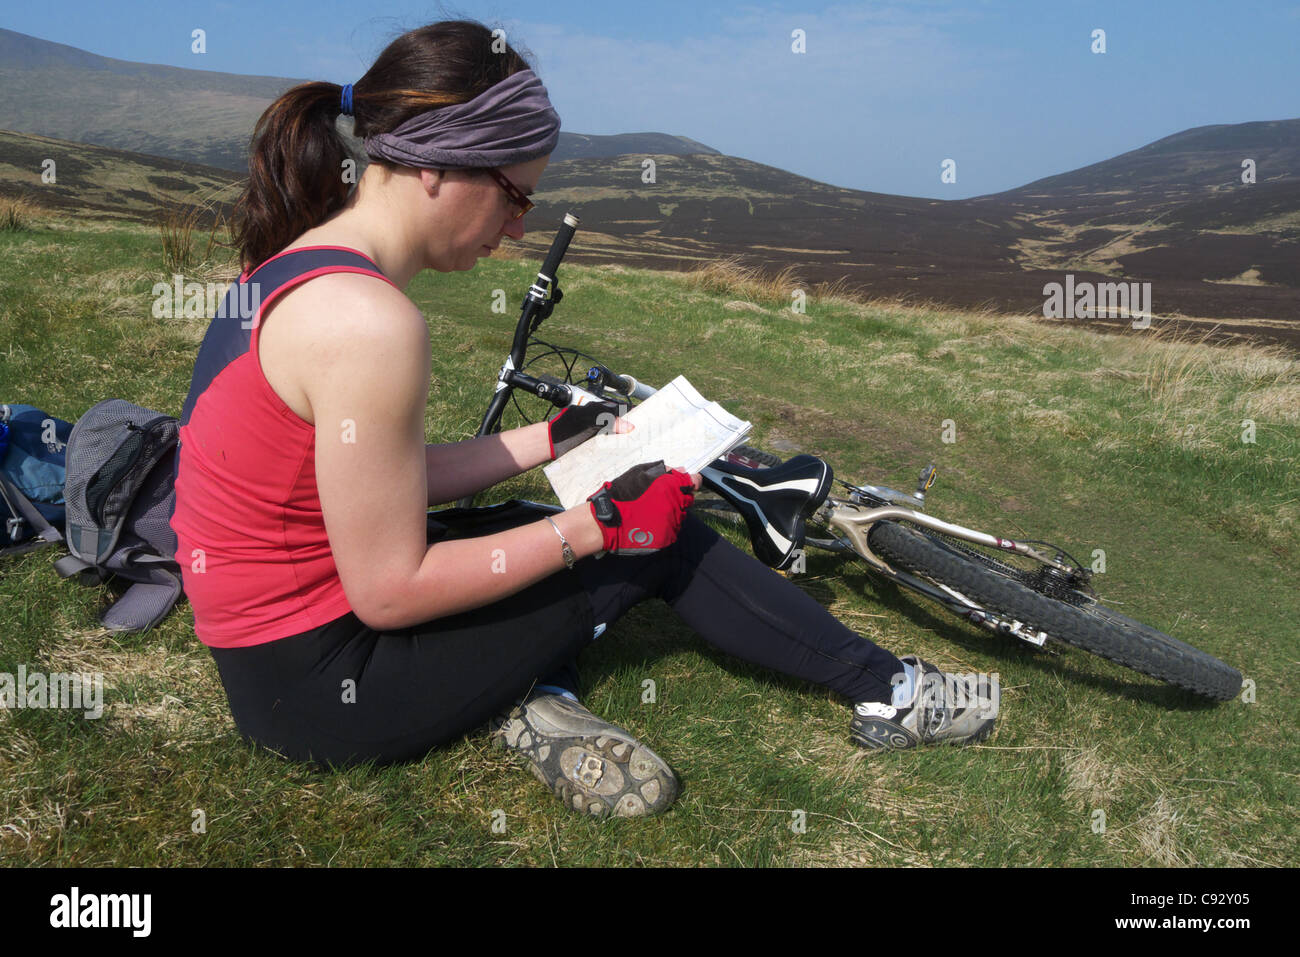 A lady mountain biker looking at a map - Stock Image